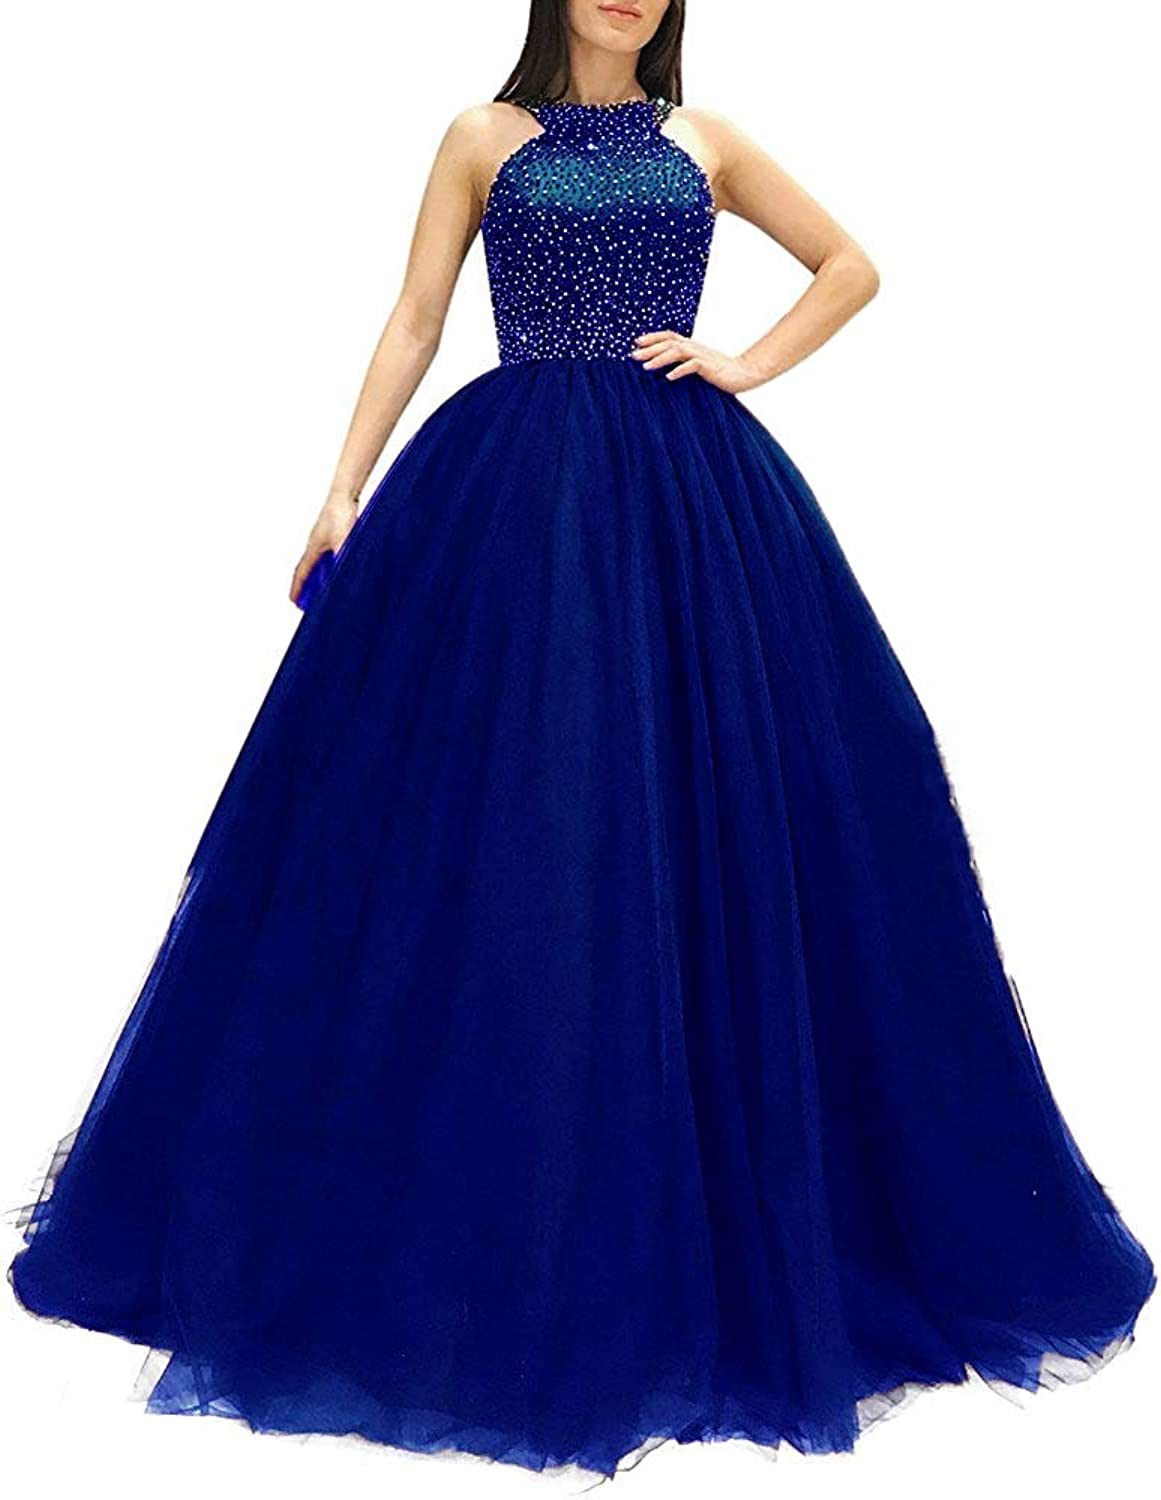 WIYMSHZ Bonnie Women's Halter Beaded top Prom Dresses Long Sexy Open Back Eveing Party Dress BS058